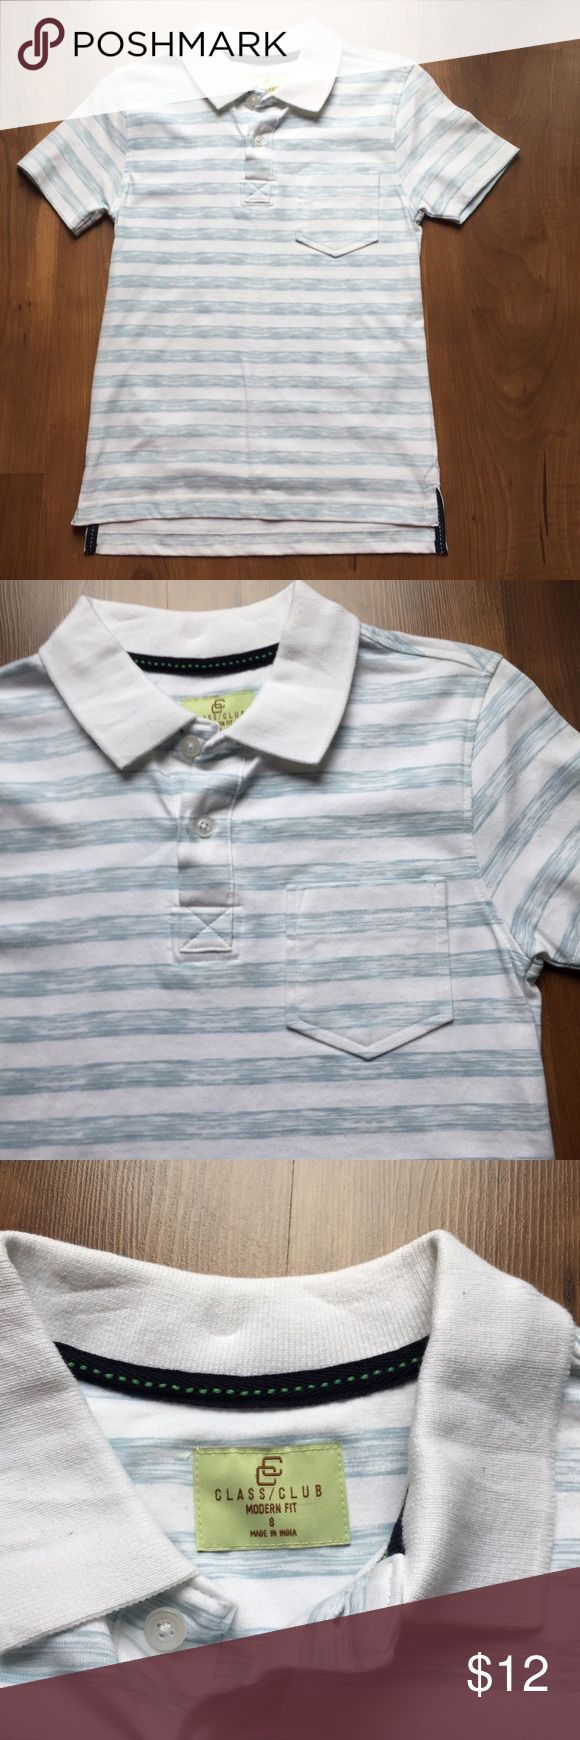 Class Club Polo Shirt NWOT Class Club Polo Shirt   Short Sleeve White and Light Blue Striped Polo Shirt with Front Pocket   100% Cotton   New WithOUT Tags Class Club Shirts & Tops Polos